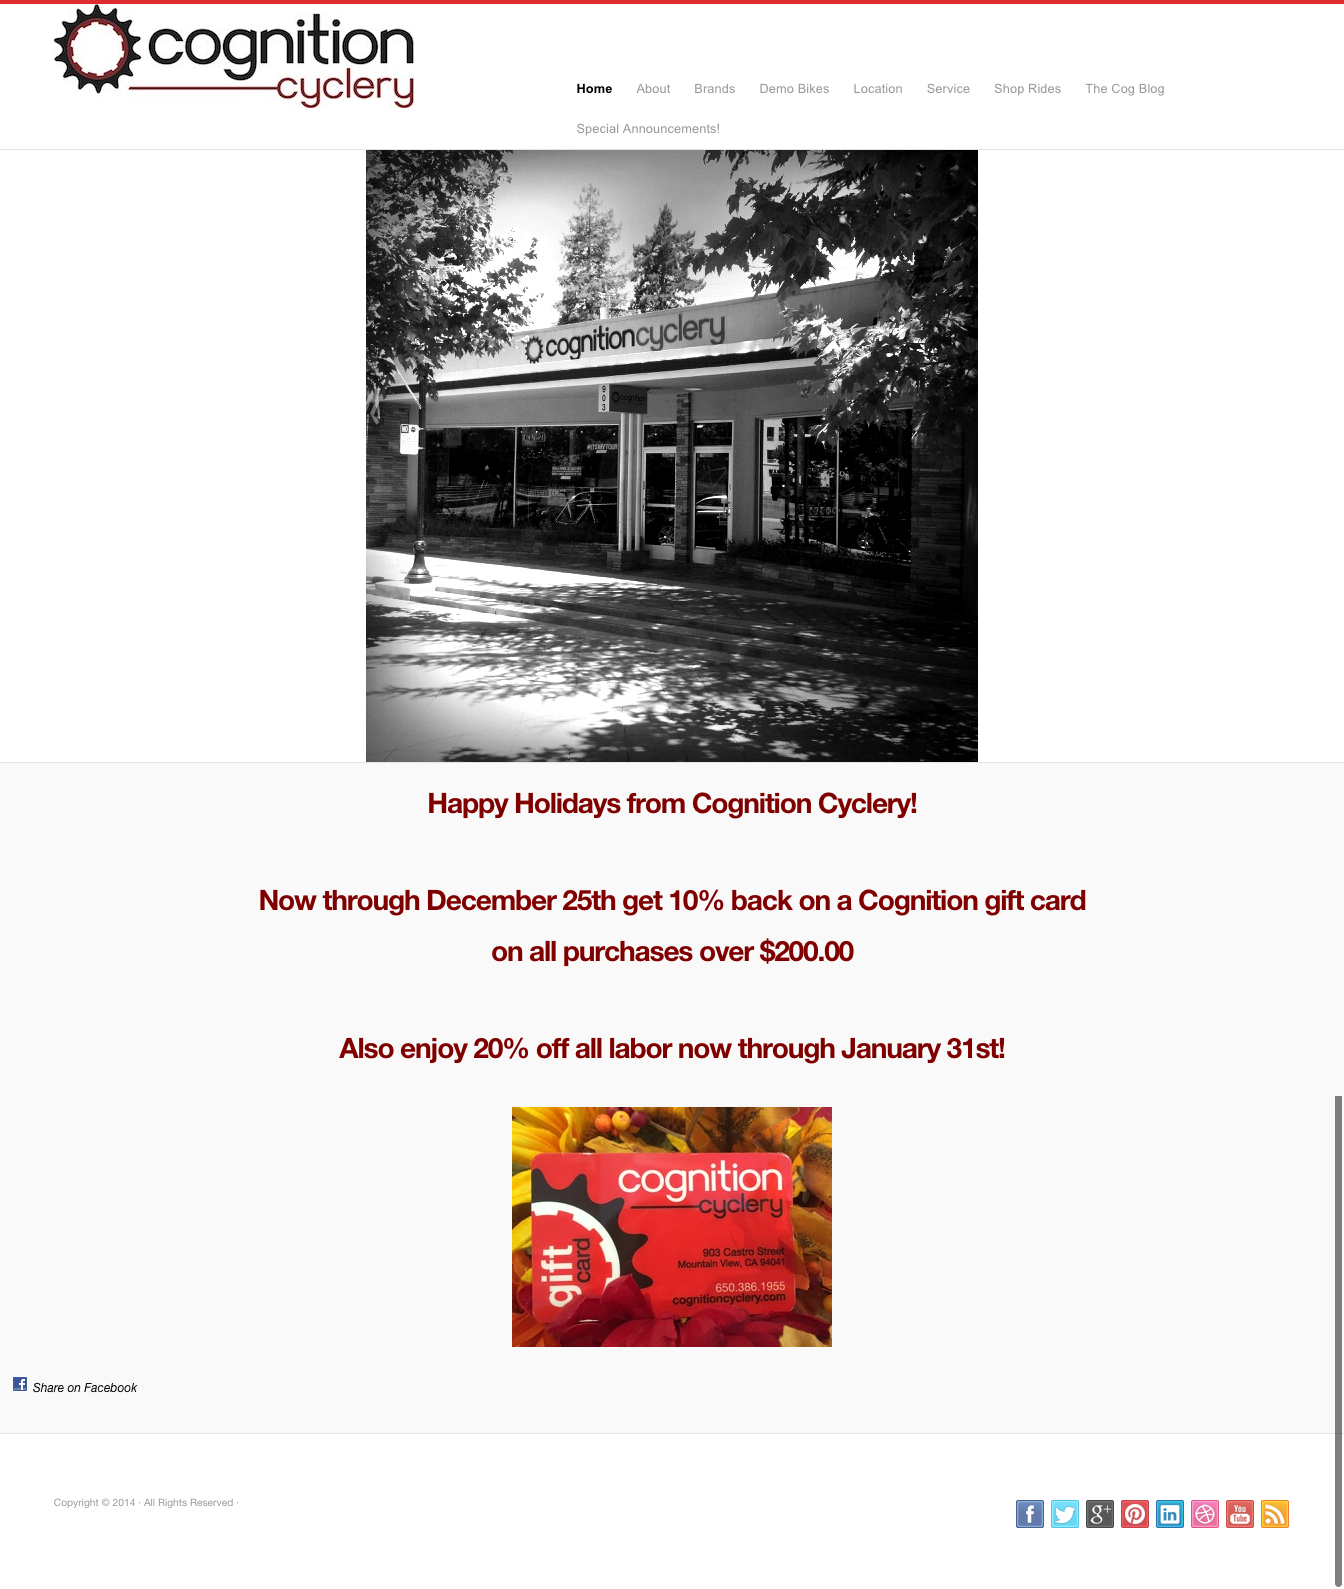 01-old-home-cognitioncyclery_com.png